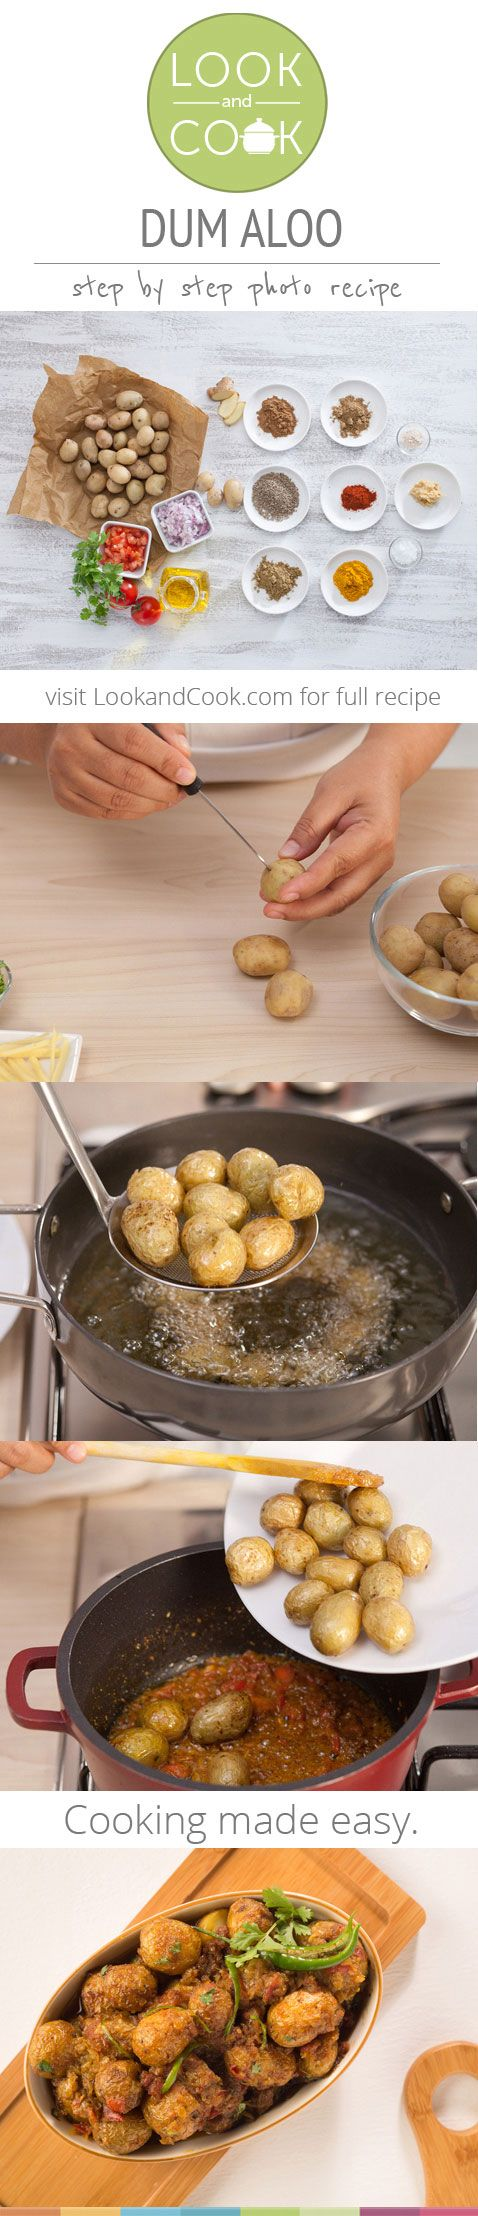 One of World's most #Delicious #Veggie #Dish ~ #Kashmiri DUM ALOO #RECIPE, Step by Step w/ Pics (where potatoes are deep fried (or air fried), then cooked slowly at a low flame in a succulent creamy gravy.)